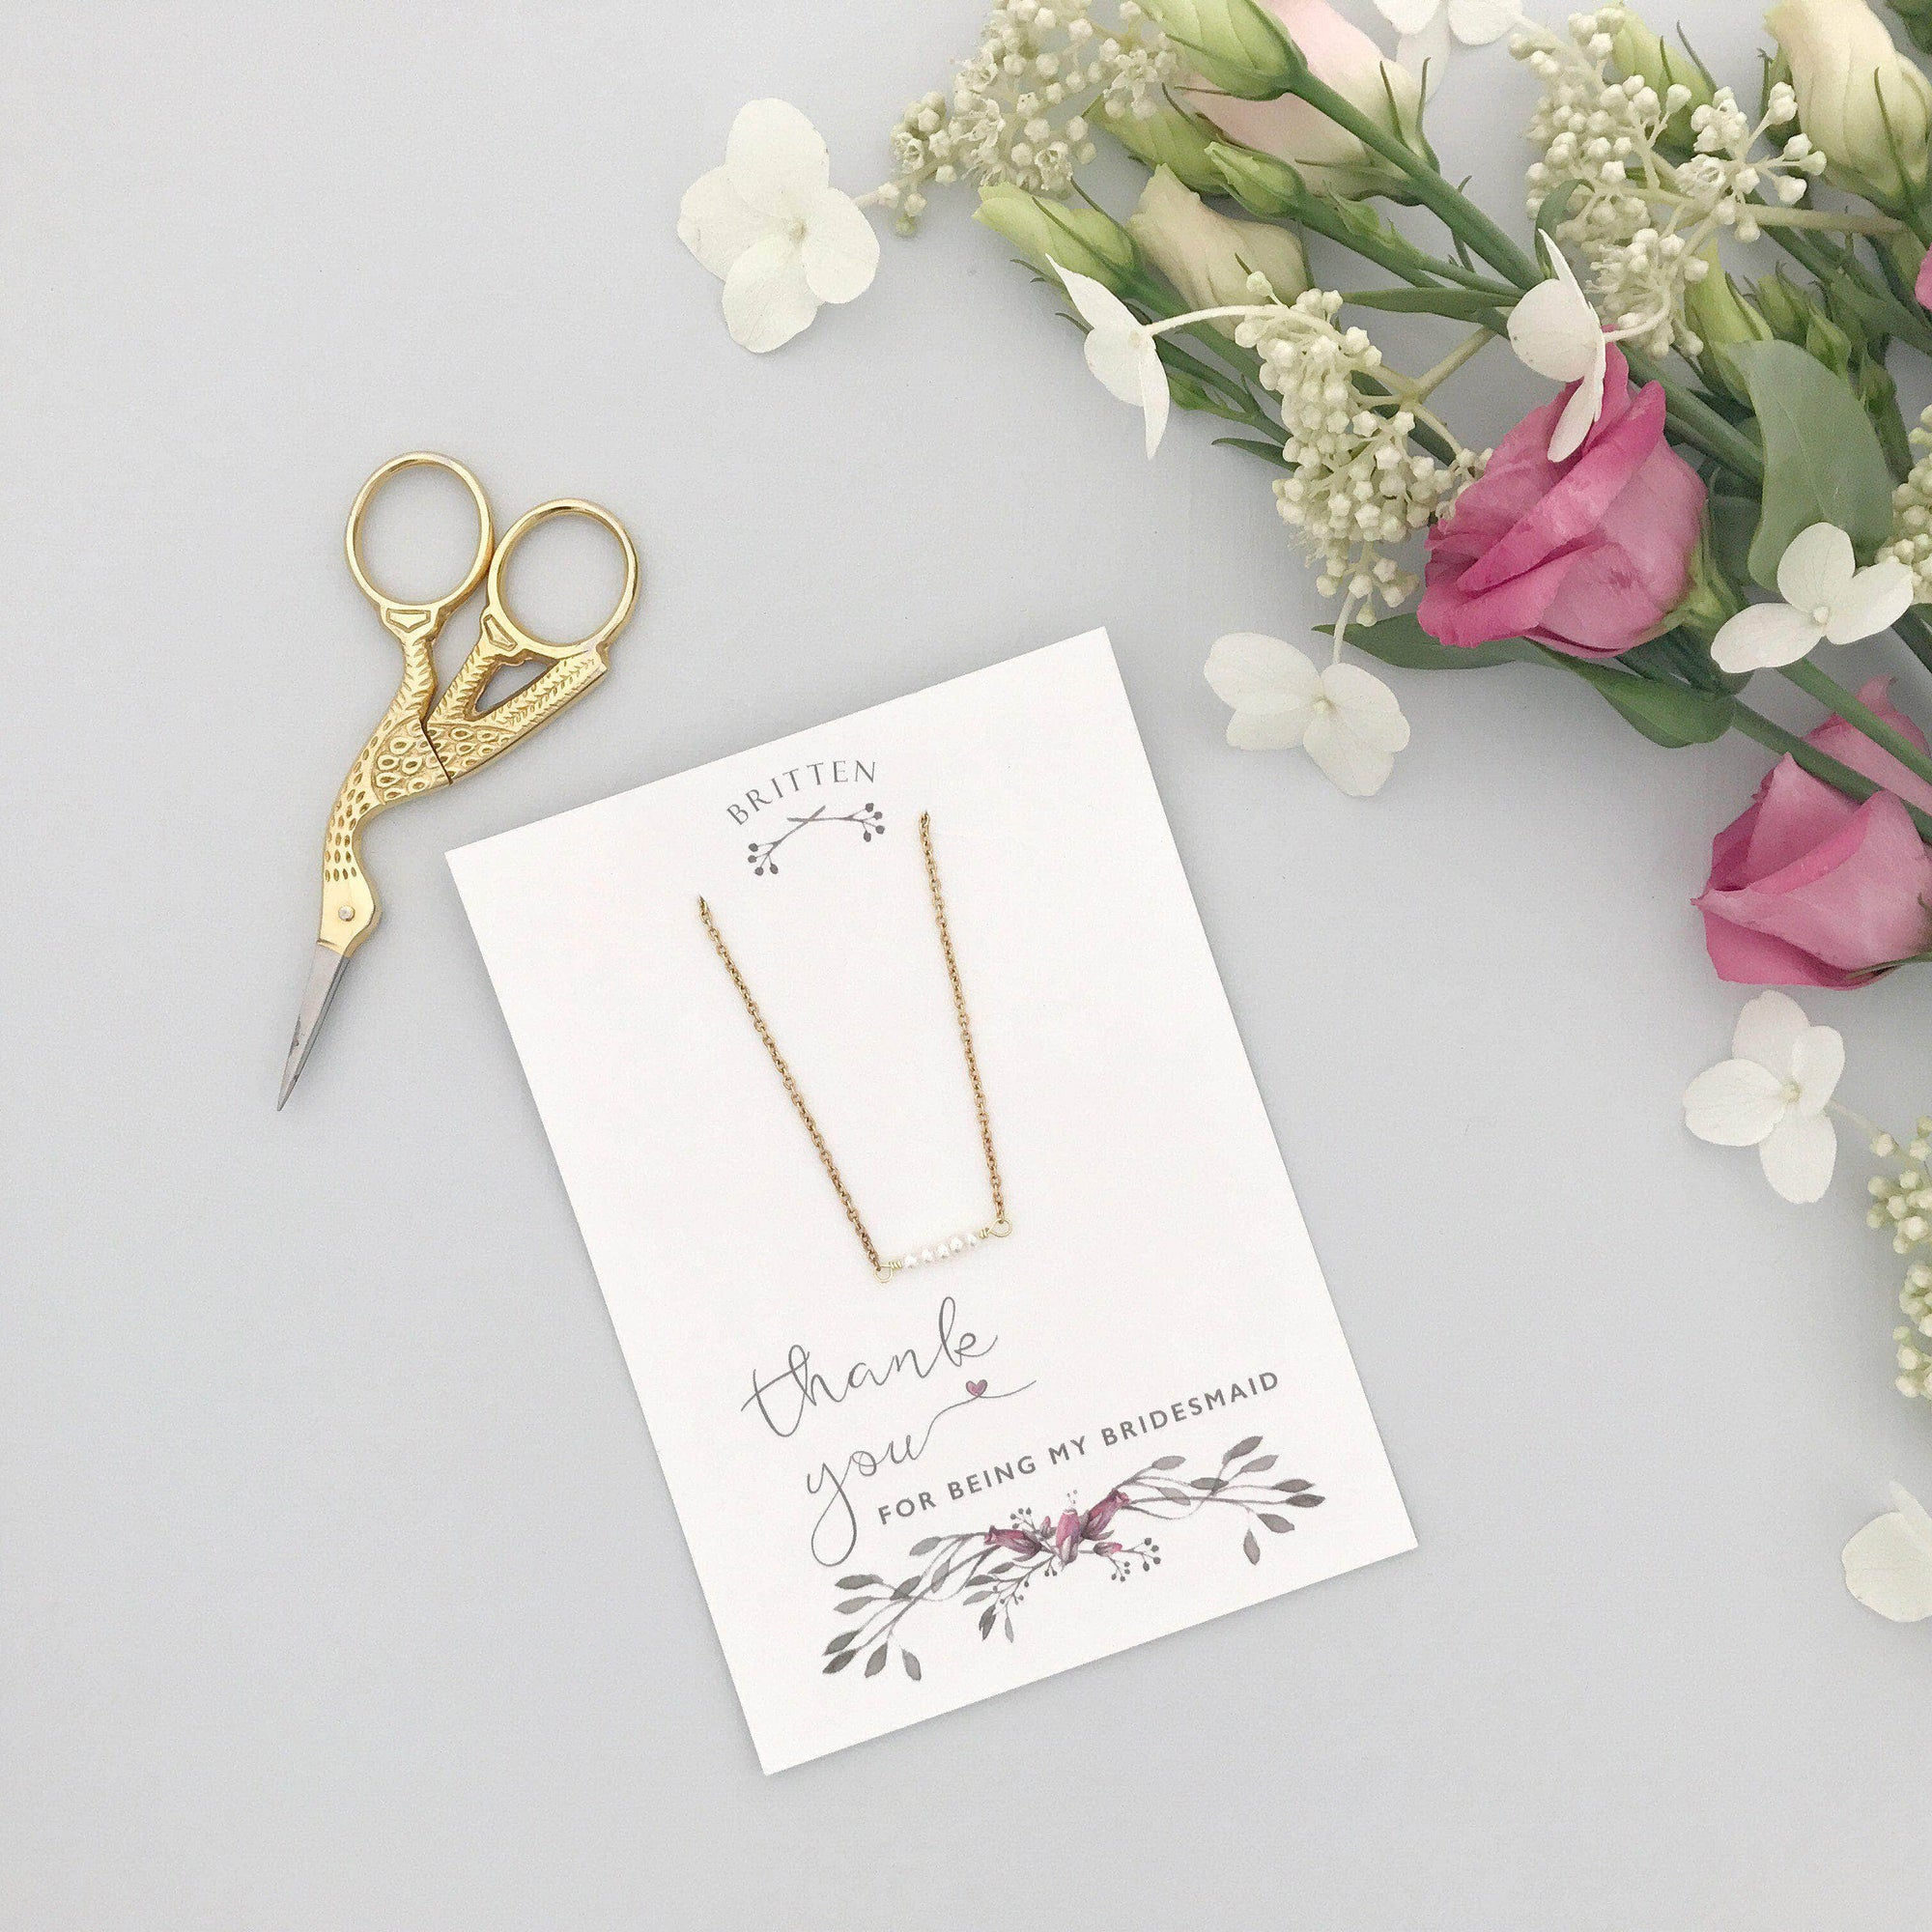 Bridesmaid Gift Gold Bridesmaid 'Thank You' gift gold necklace - 'Freya'